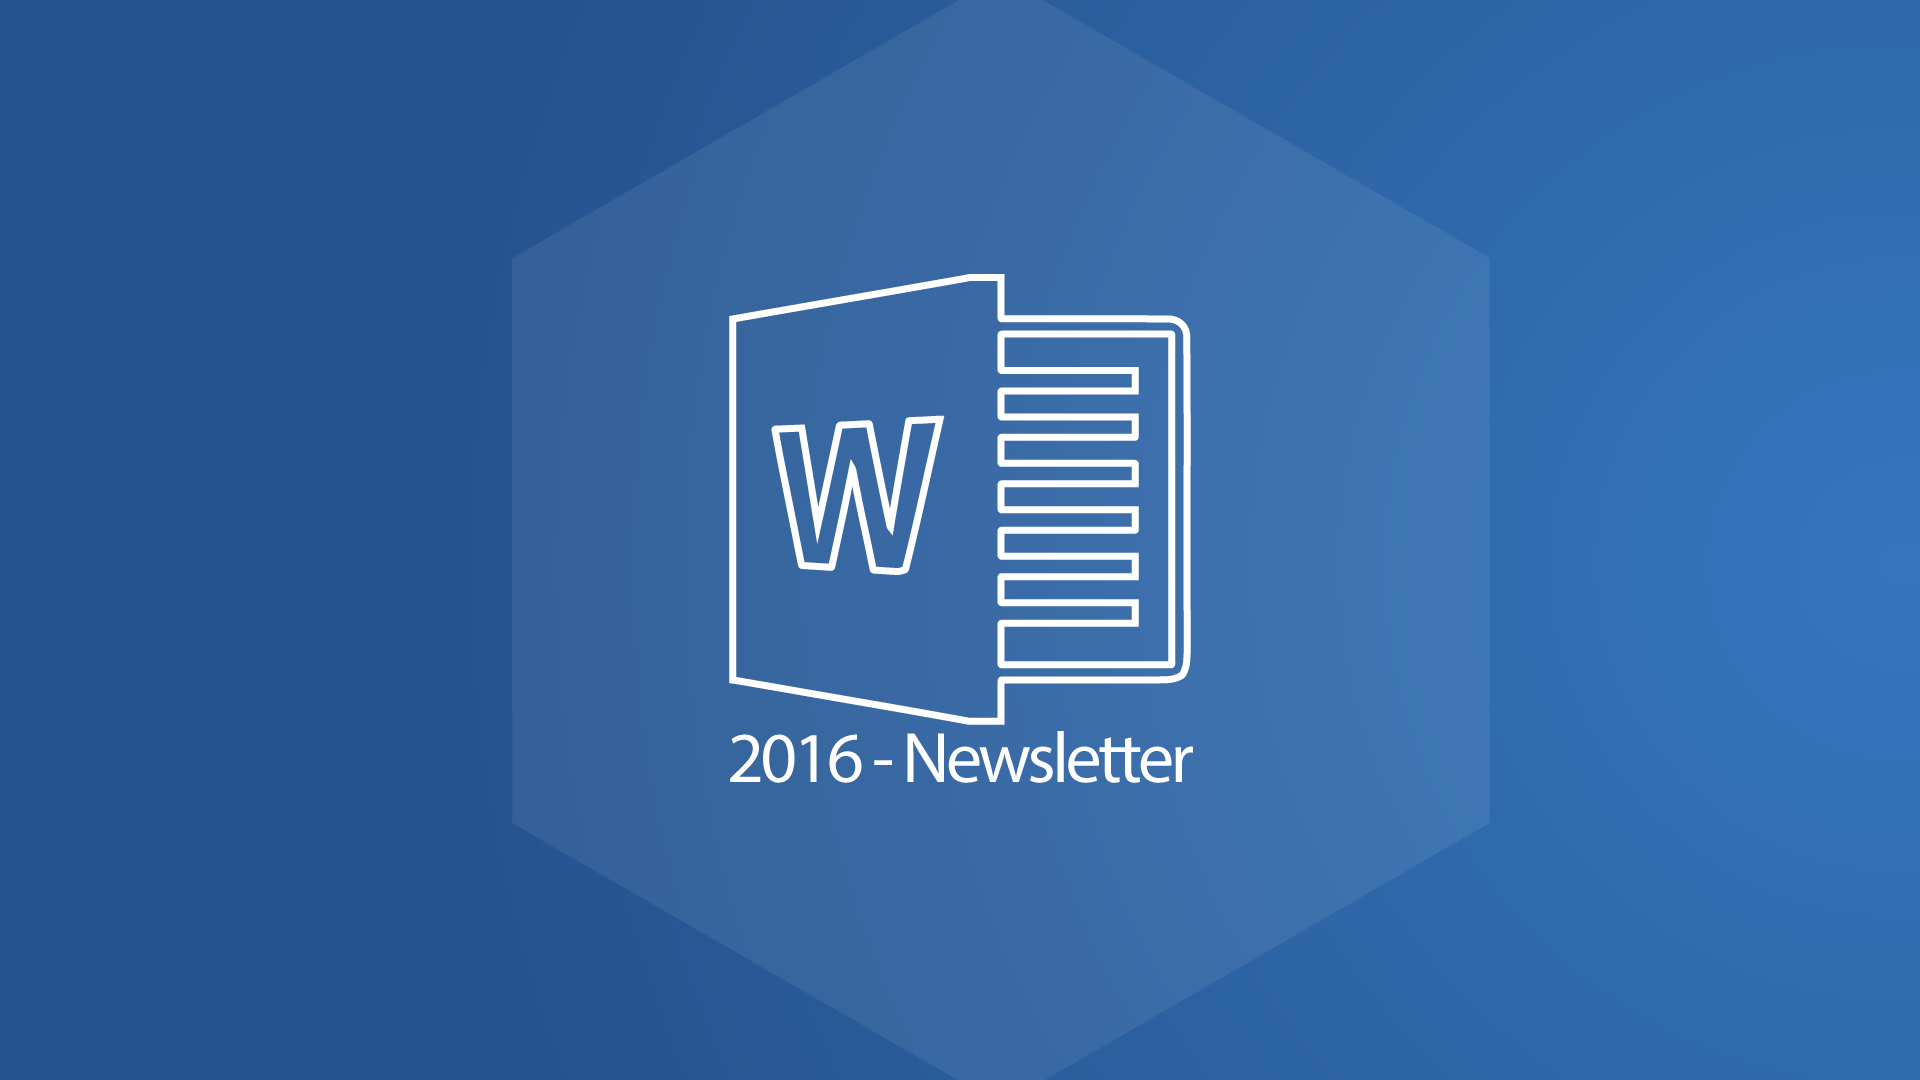 Word 2016 Newsletter